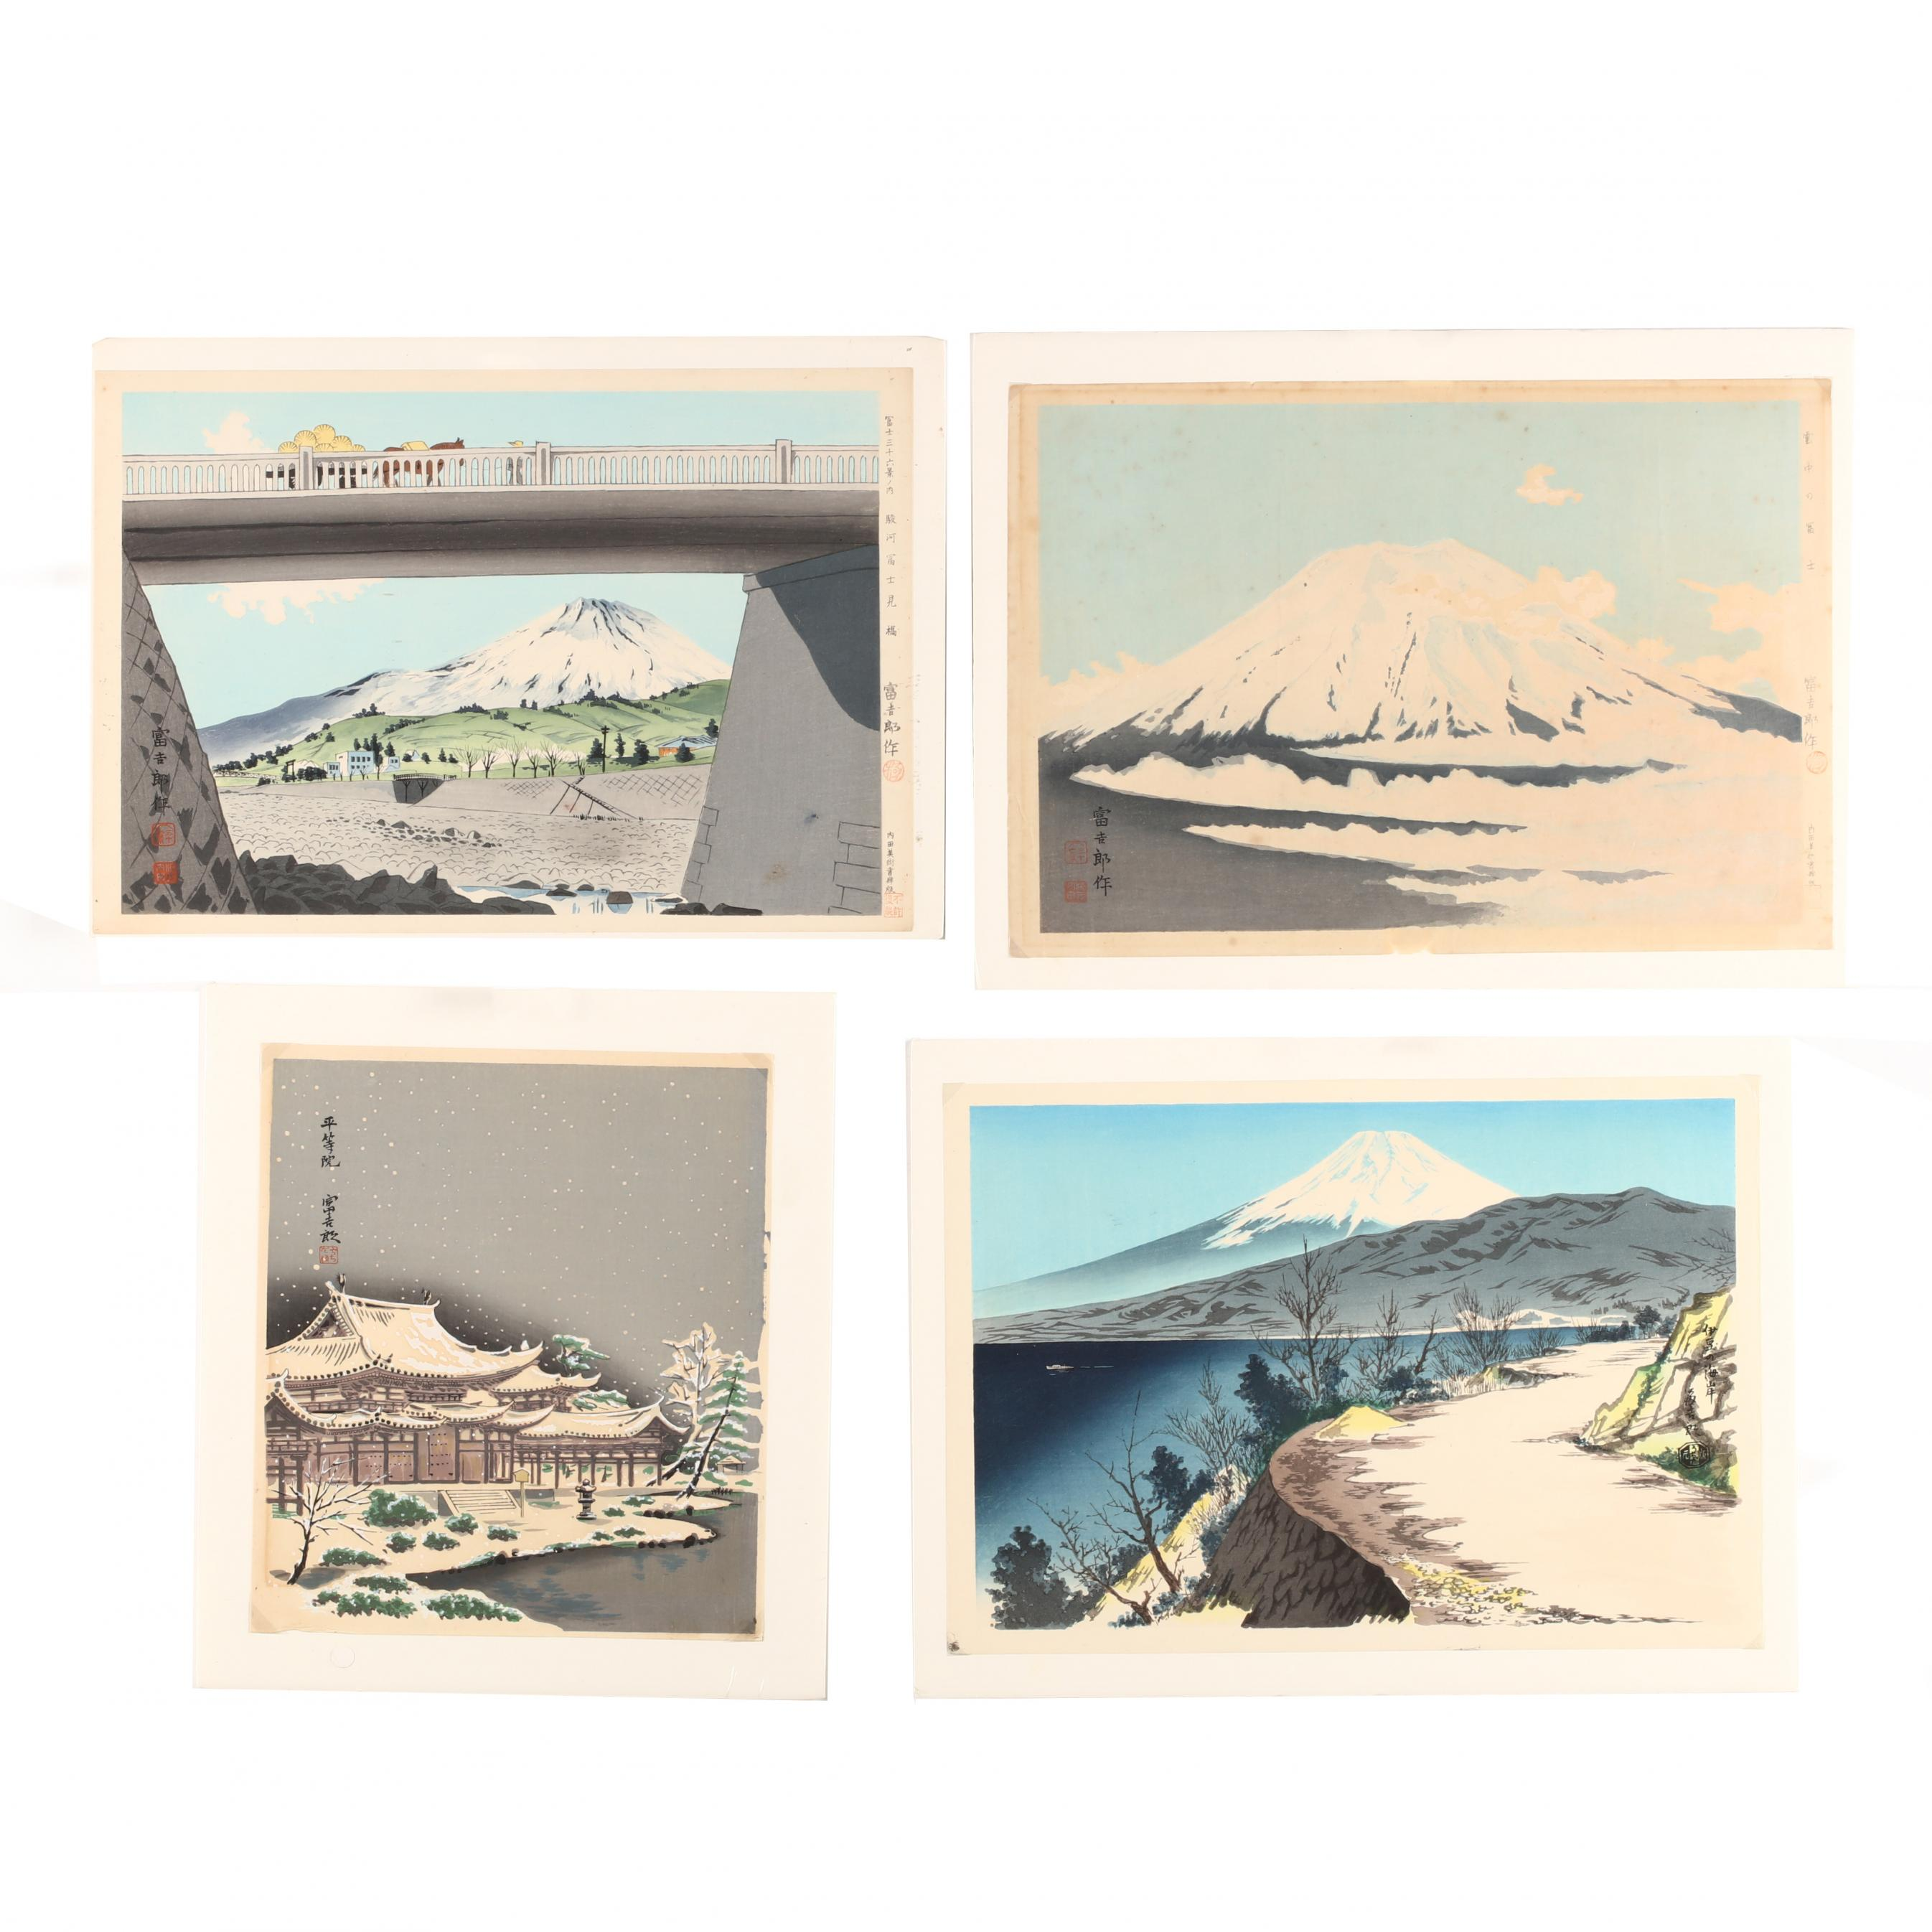 tokuriki-tomikichiro-japanese-1902-1999-four-woodblock-prints